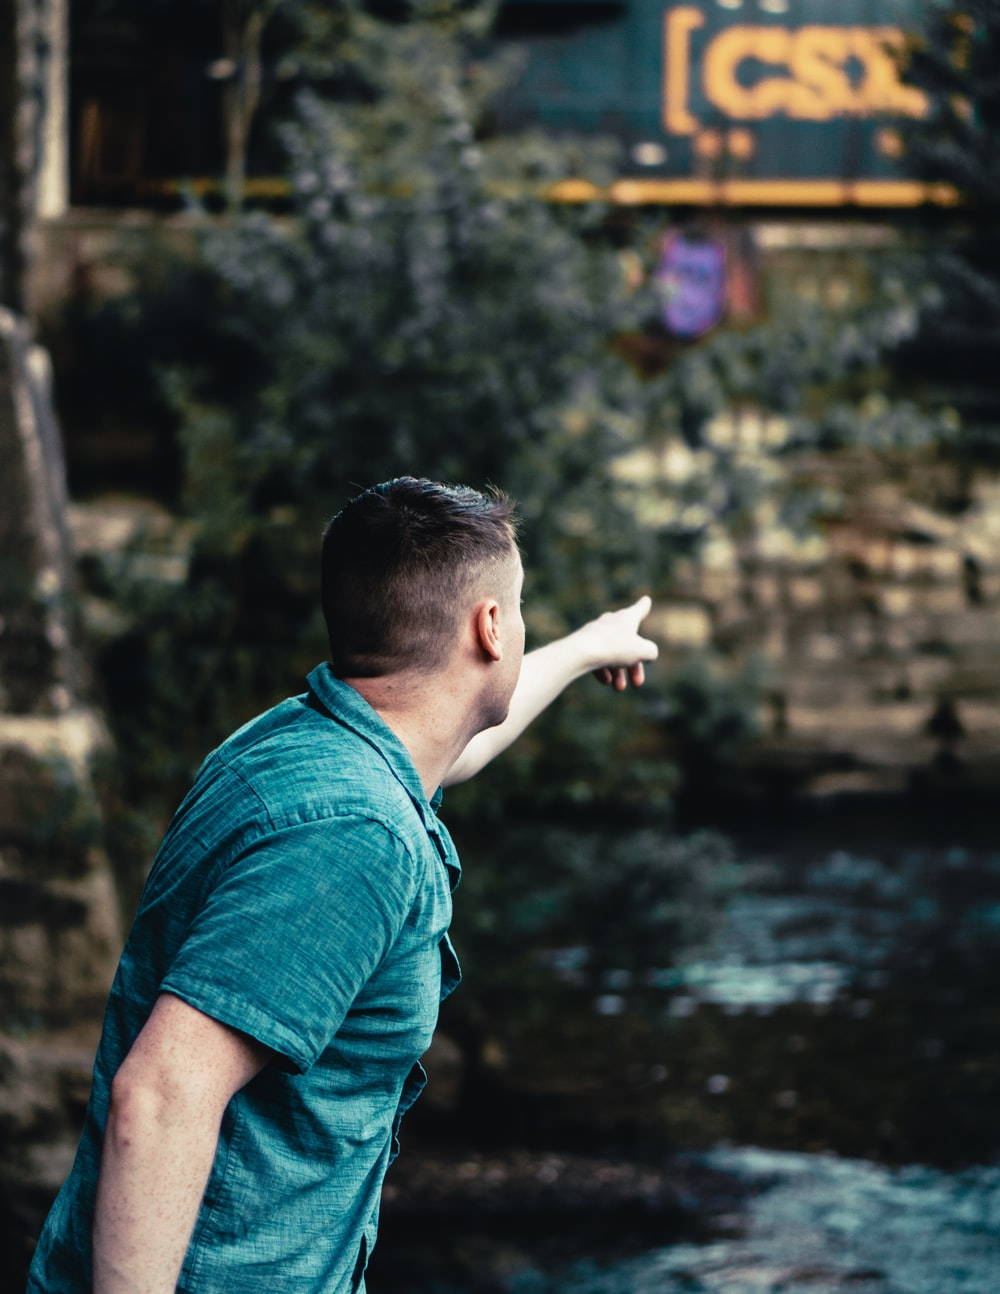 man in blue t-shirt standing near body of water during daytime